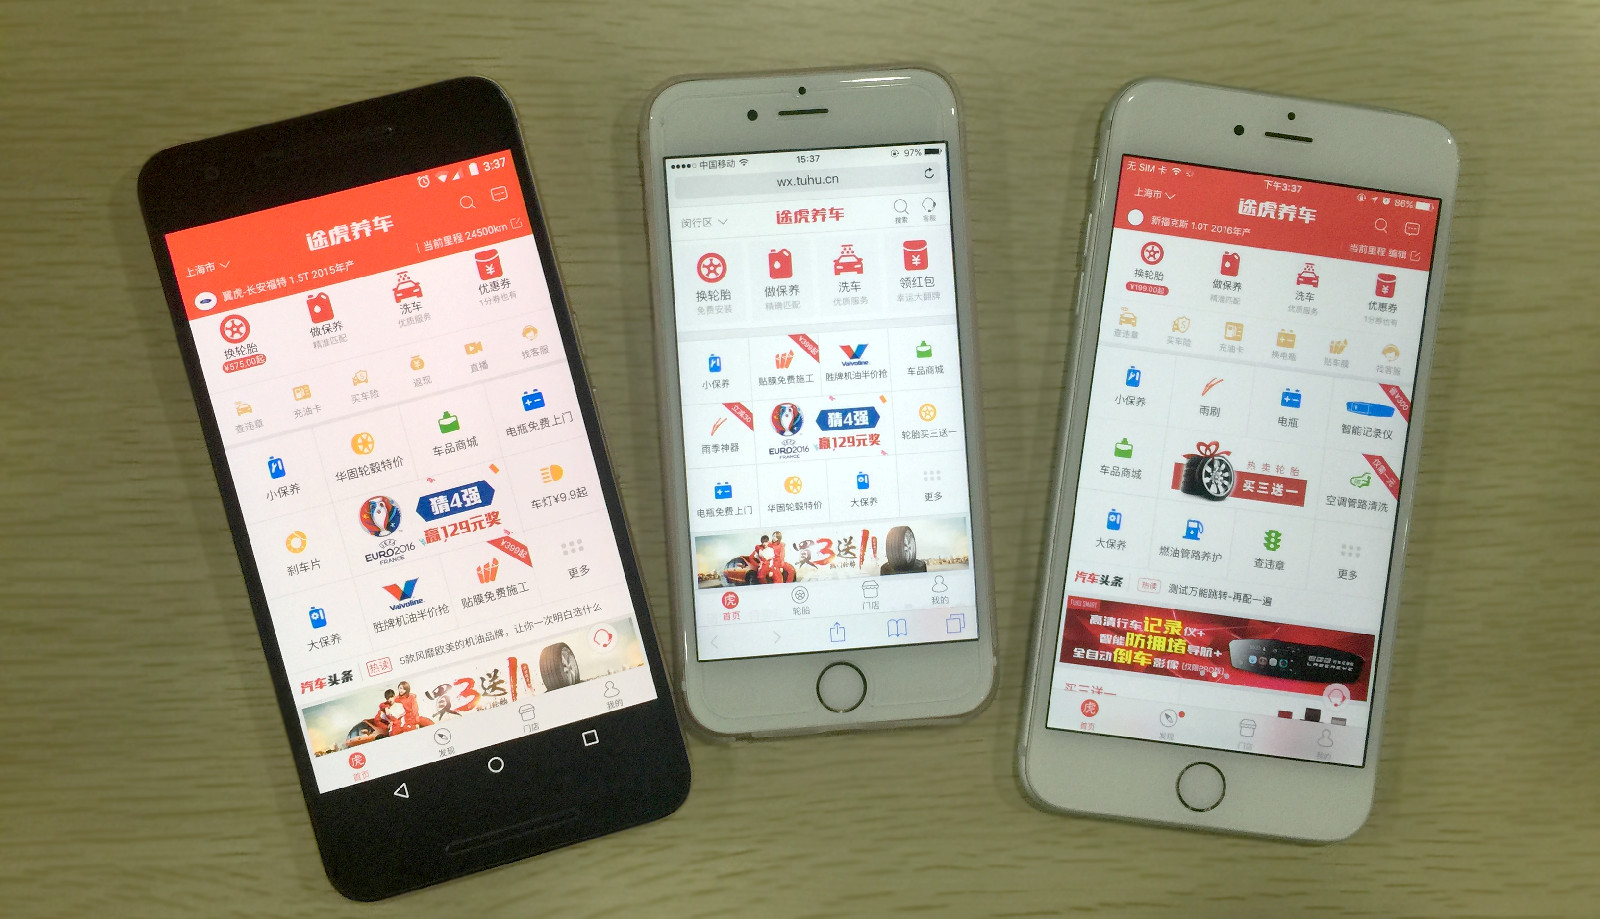 Tuhu's app on Android and iOS devices